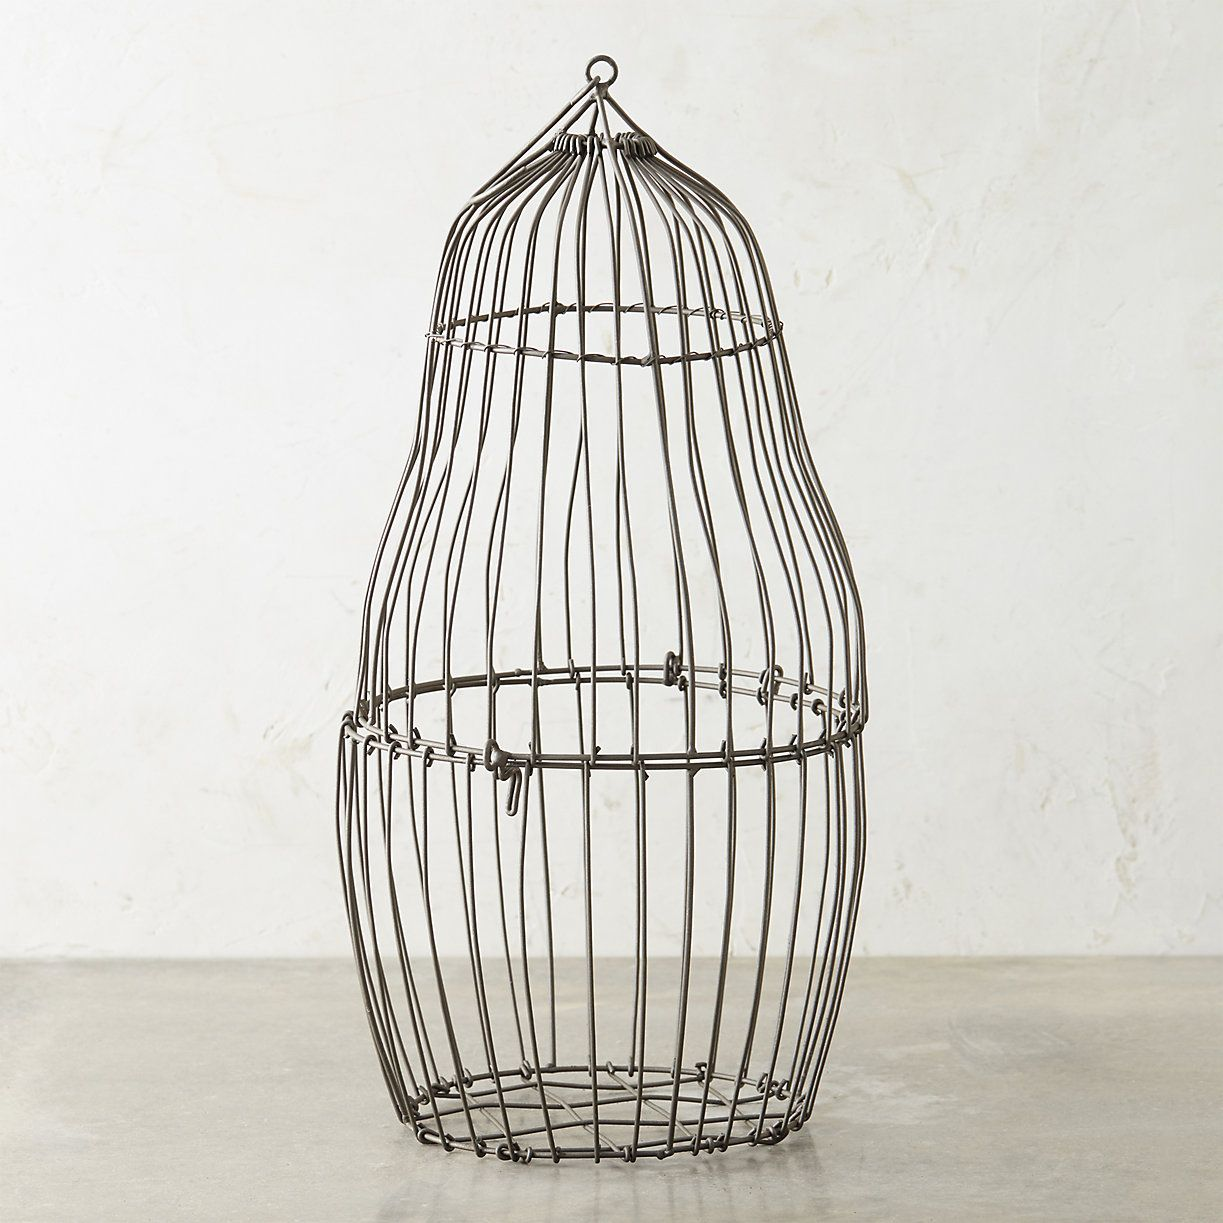 Steel Bird Cage Planter   Bird cages, Planters and Steel